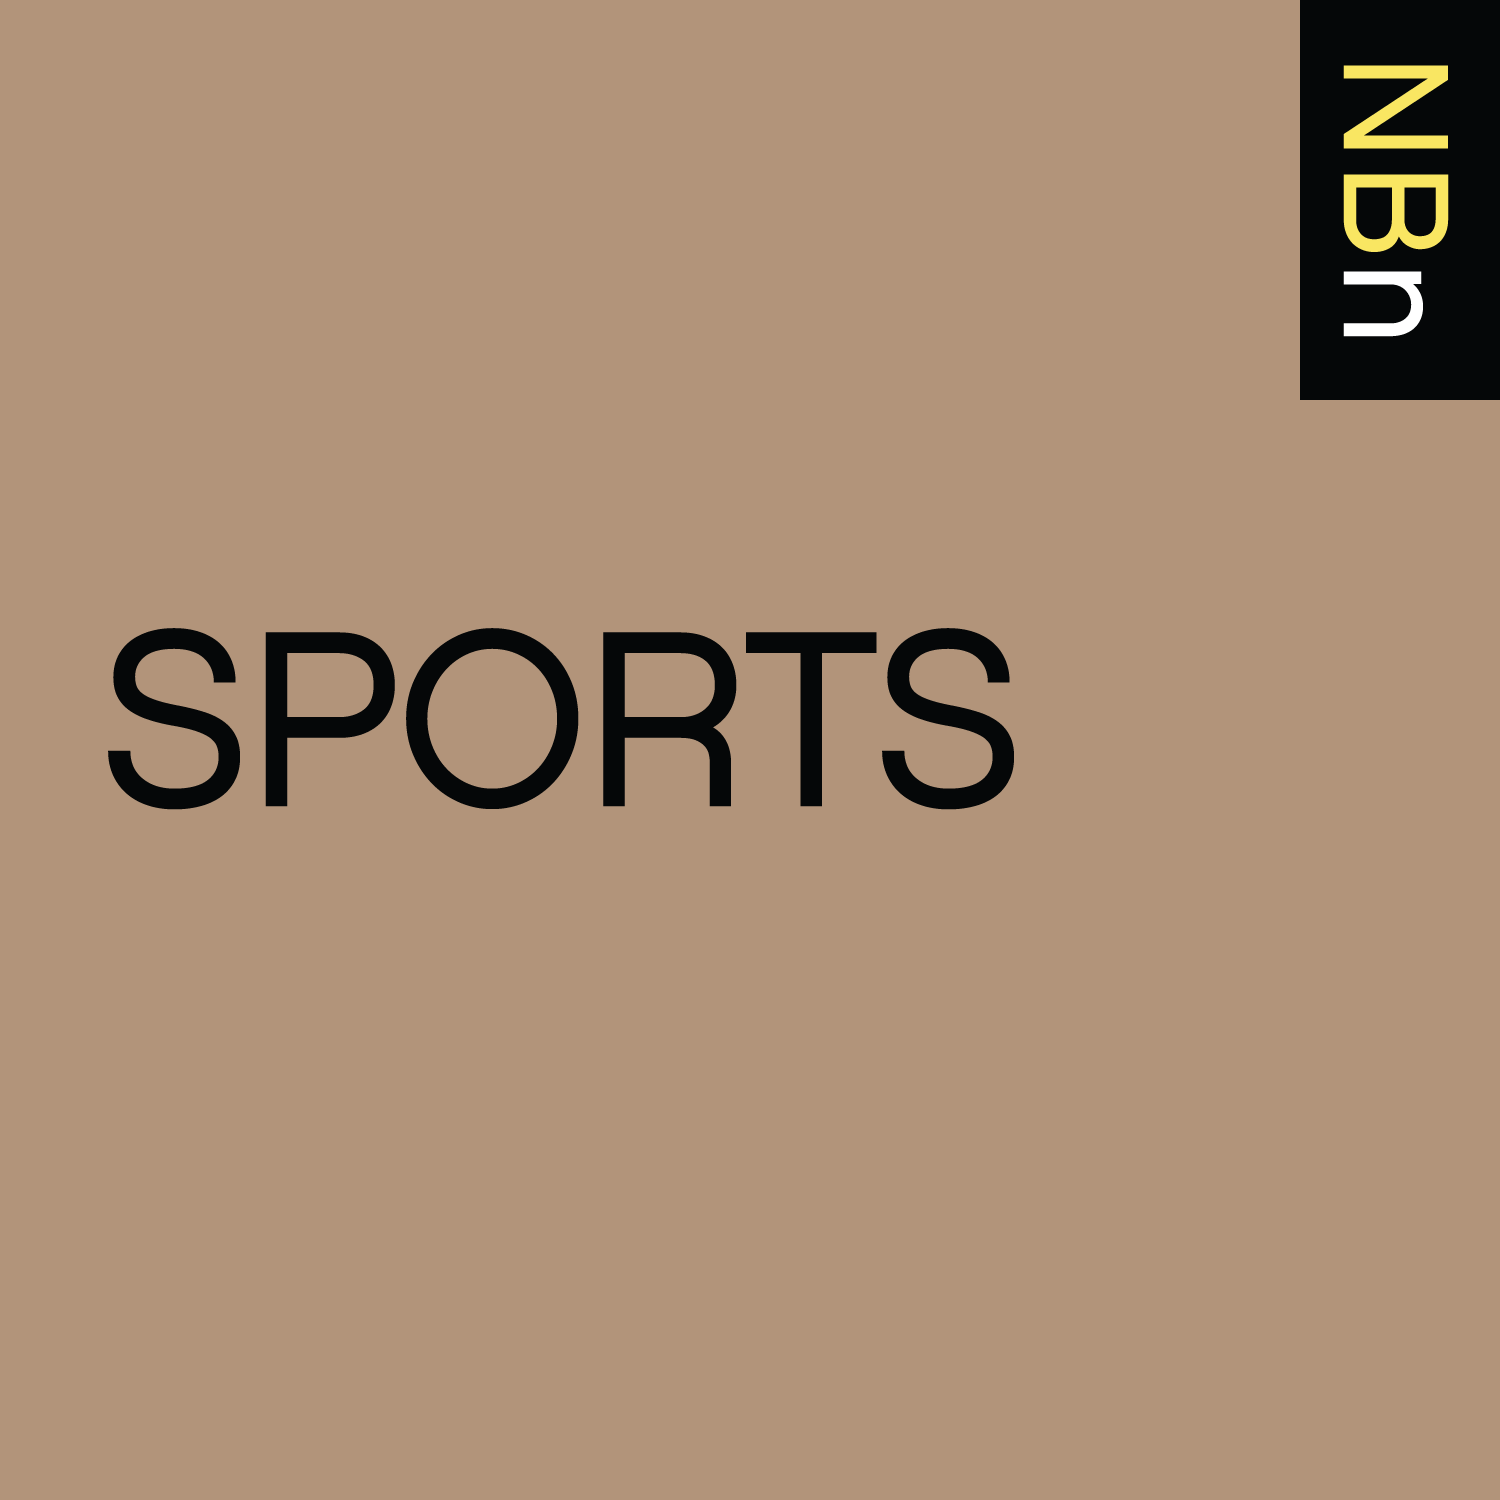 New Books in Sports podcast tile